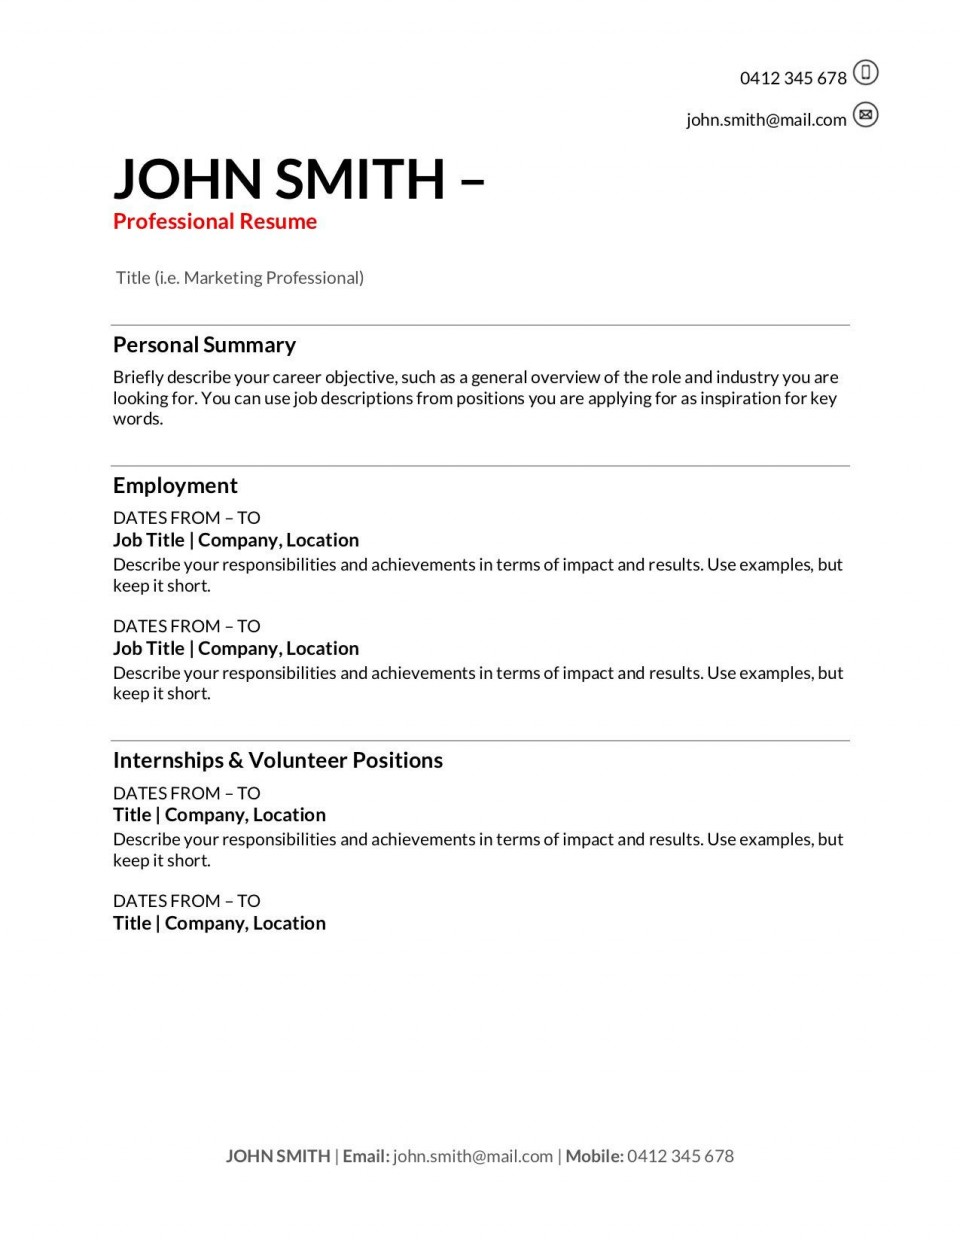 006 Impressive Resume Template For First Job High Def  After College Sample Student Teenager960